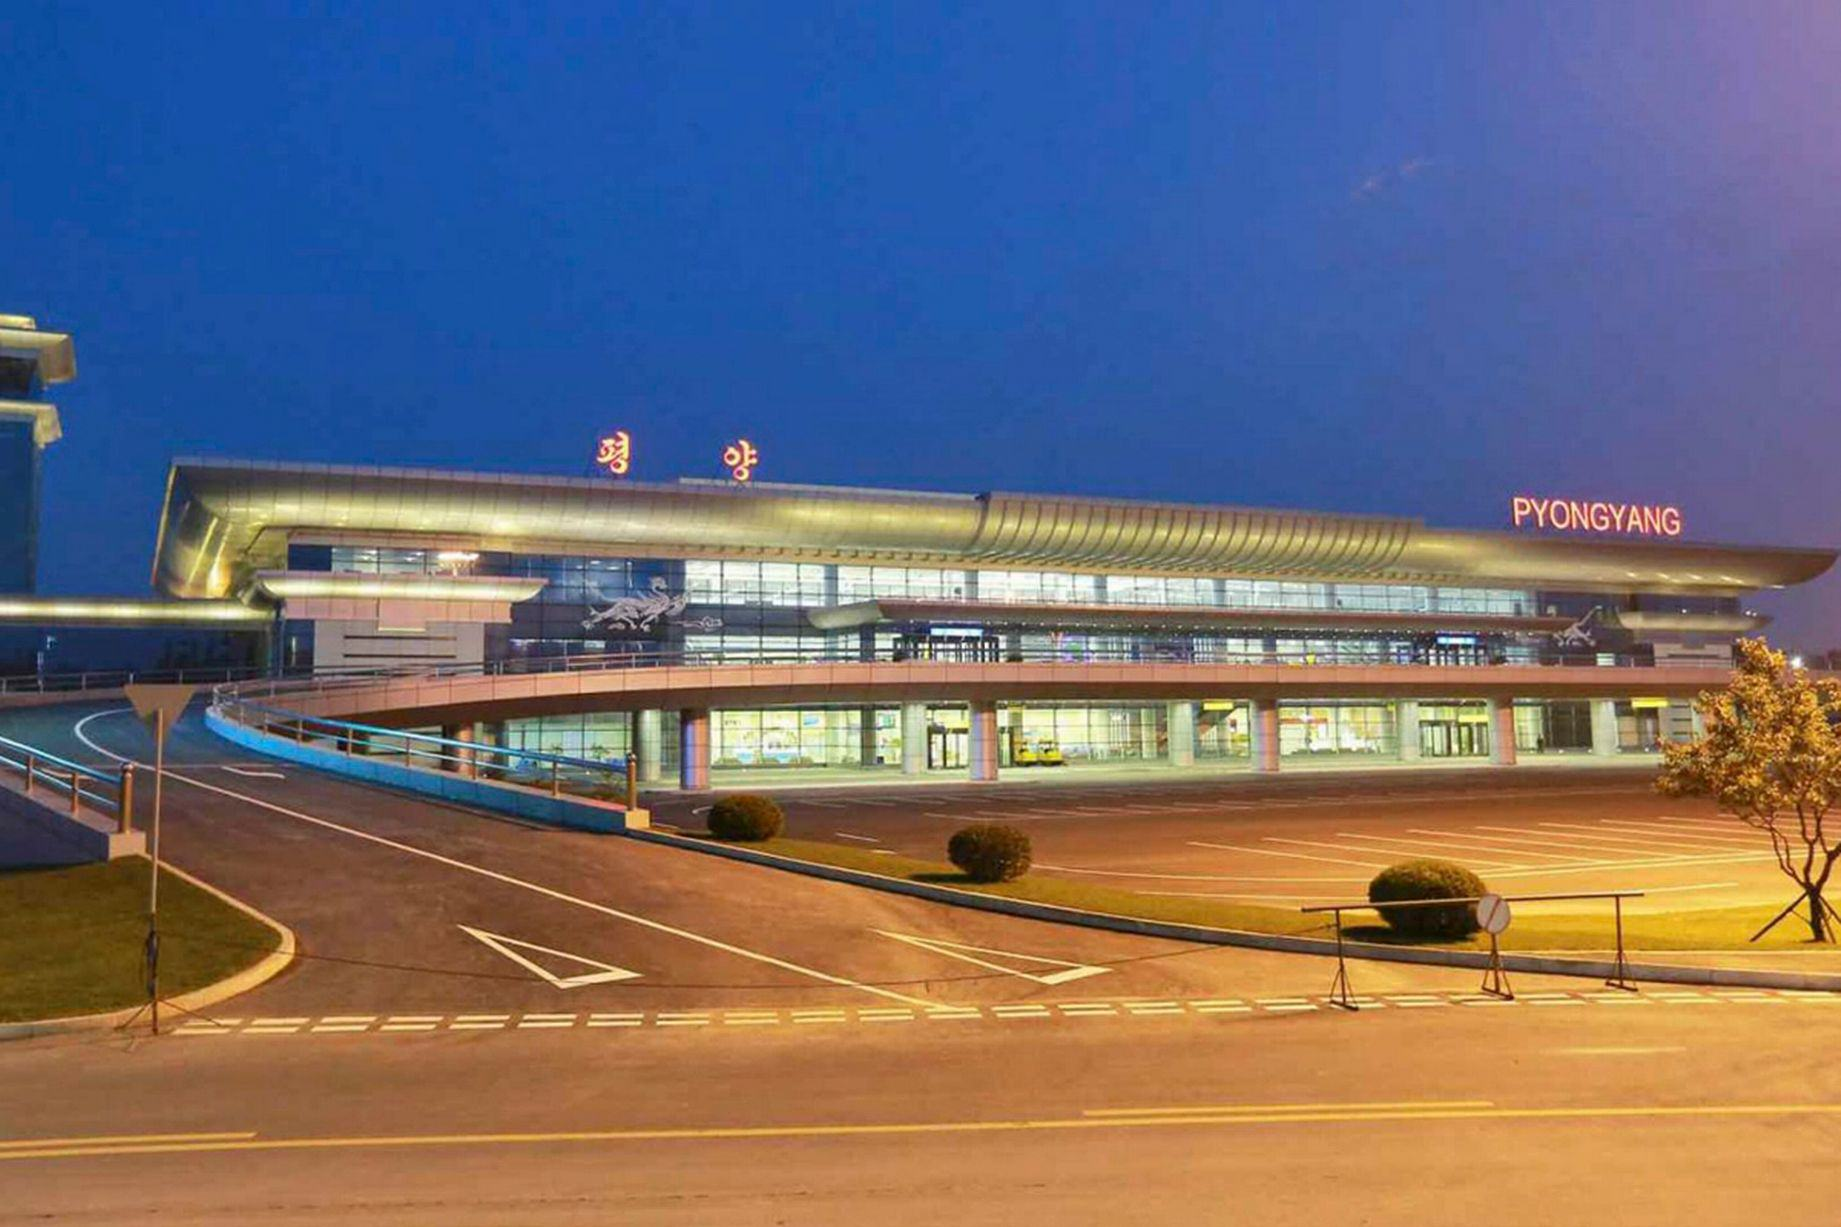 kim architect 2 Kim Jong Un Executed Airport Architect Because He Hated The Design